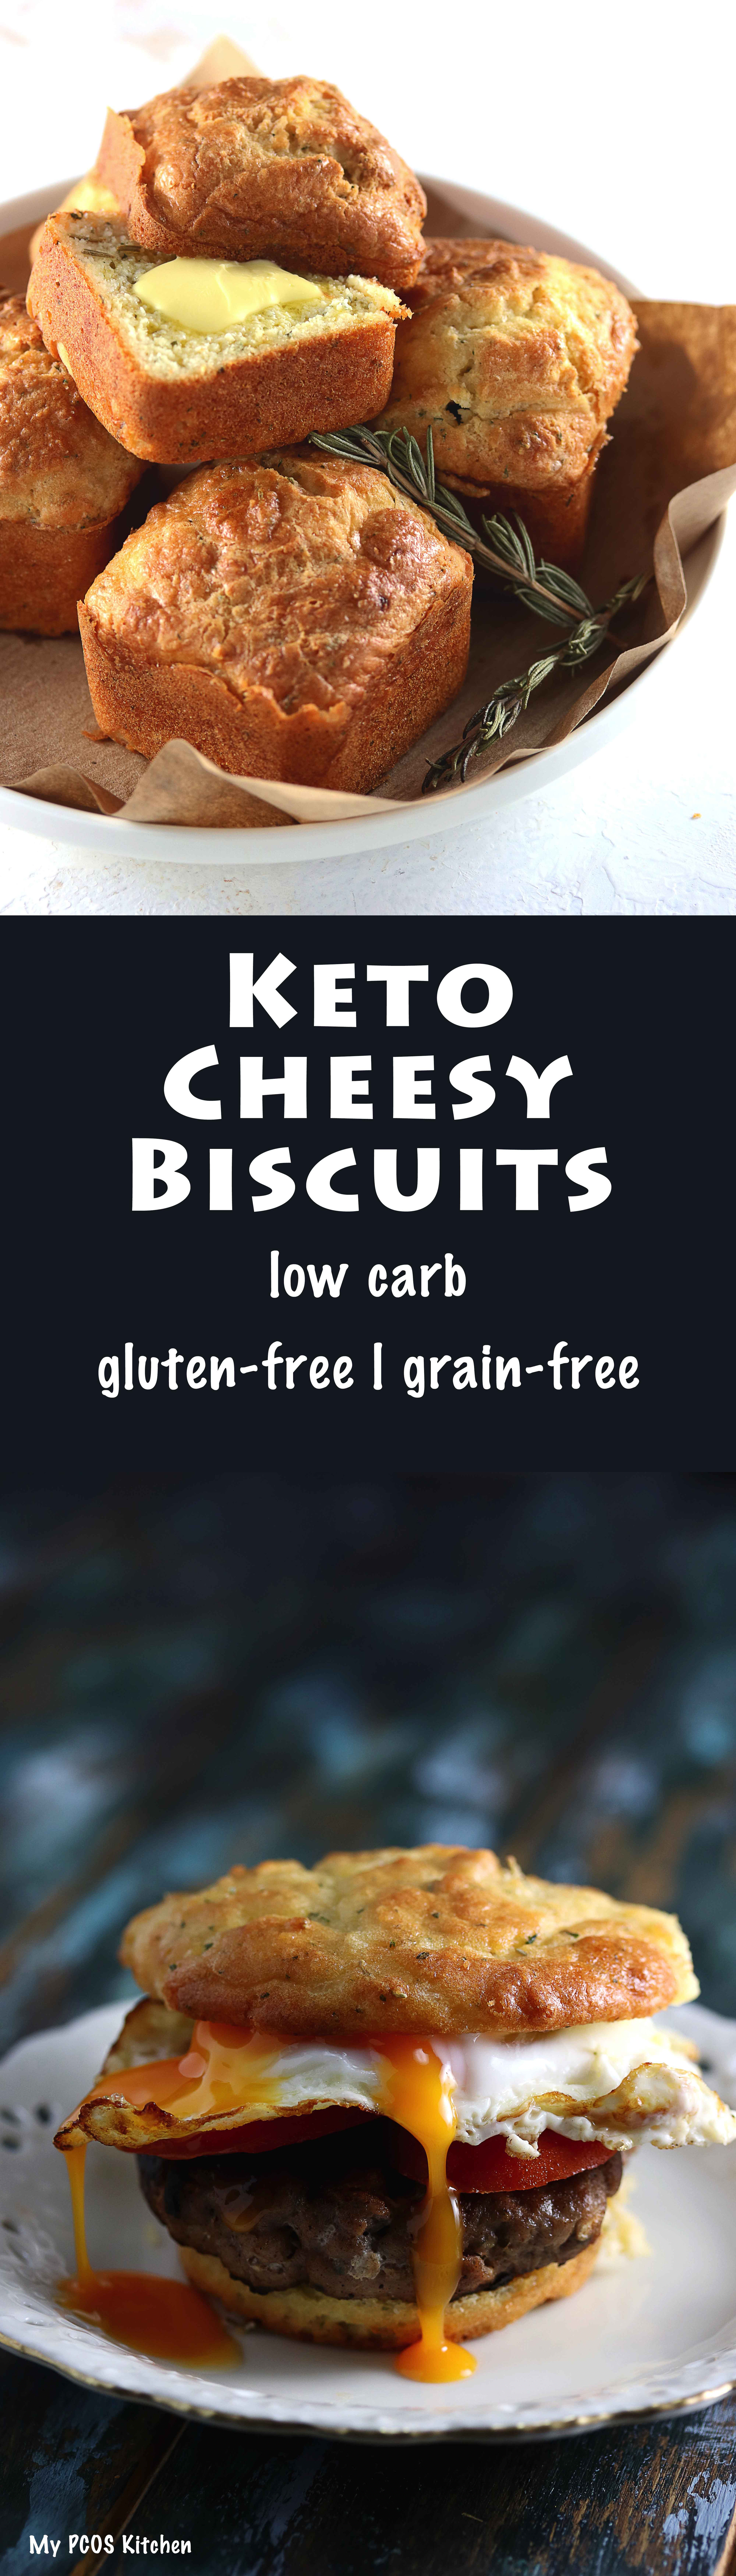 My PCOS Kitchen - Keto Cheesy Biscuits - These low carb gluten-free biscuits are made with almond flour, sour cream and cheese! They are perfect for breakfast or a delicious snack! #keto #lowcarb #glutenfree #biscuits #lchf #ketogenic #cheesy #breakfast #bread #grainfree